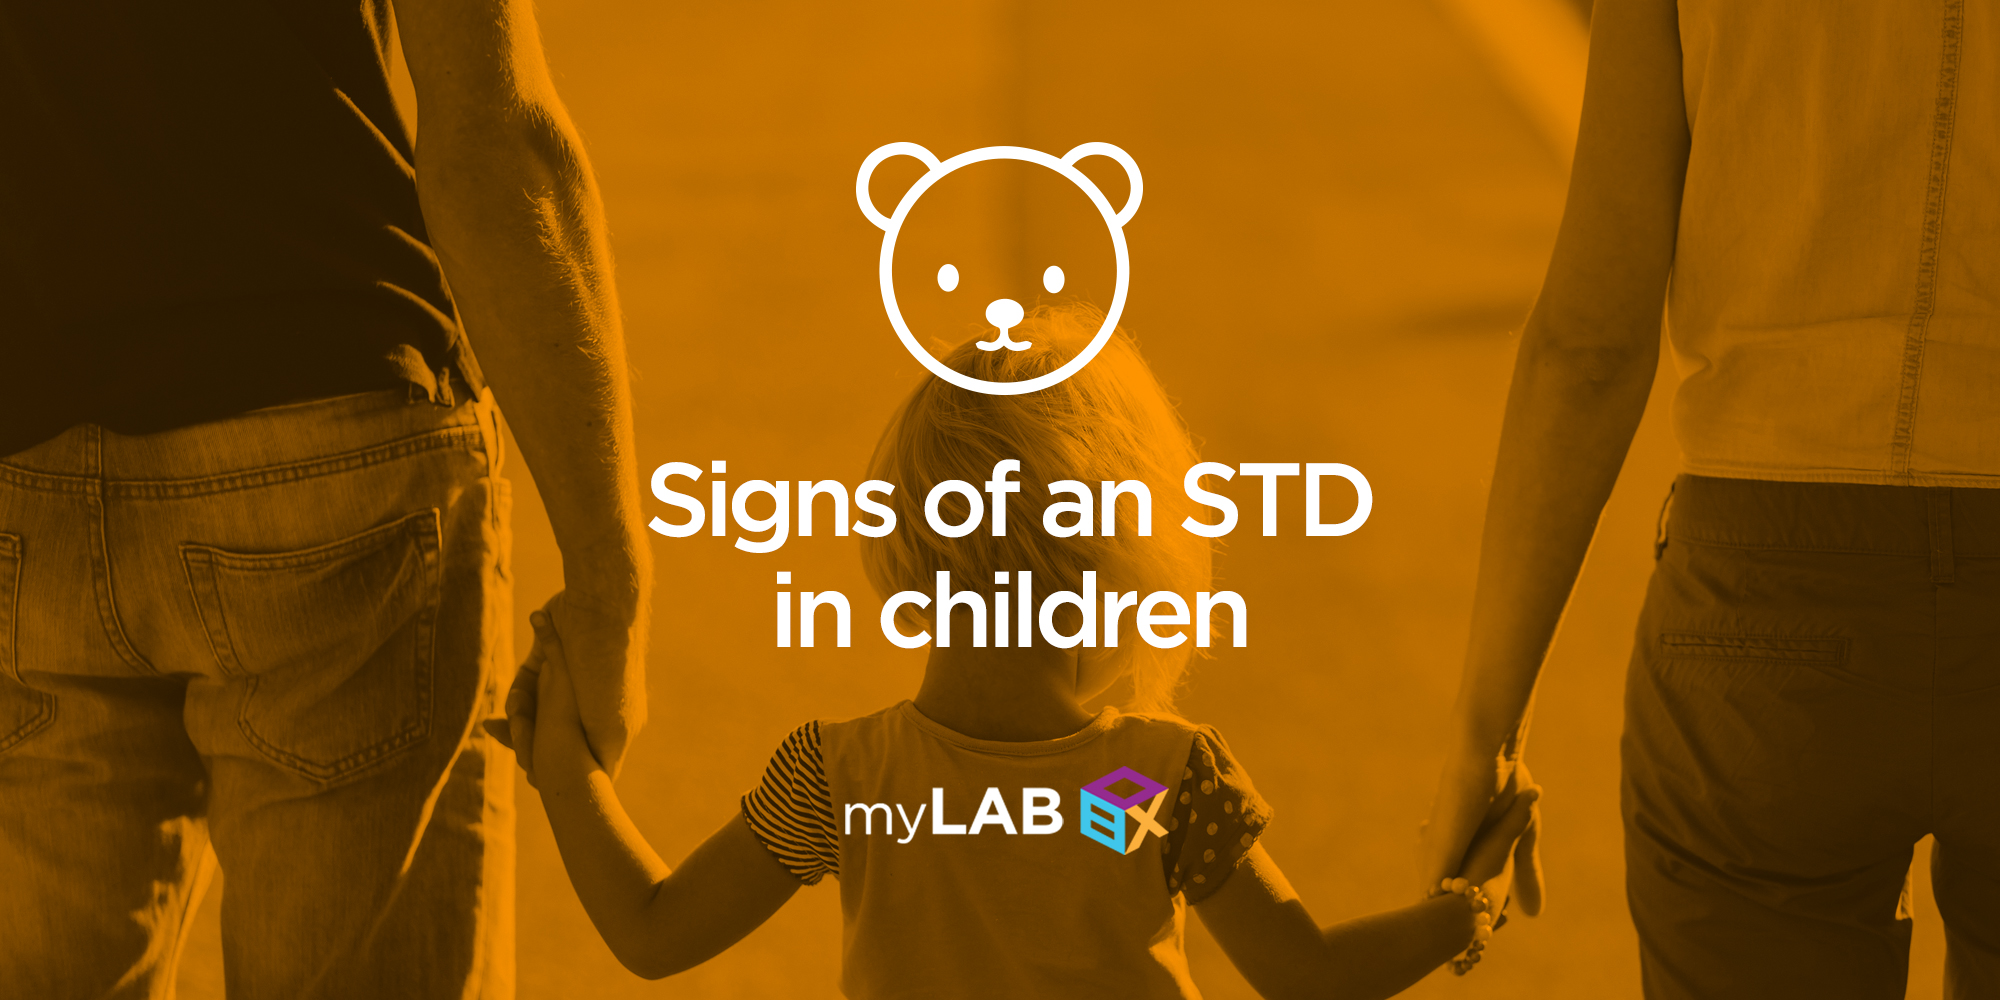 Signs of an STD in Children